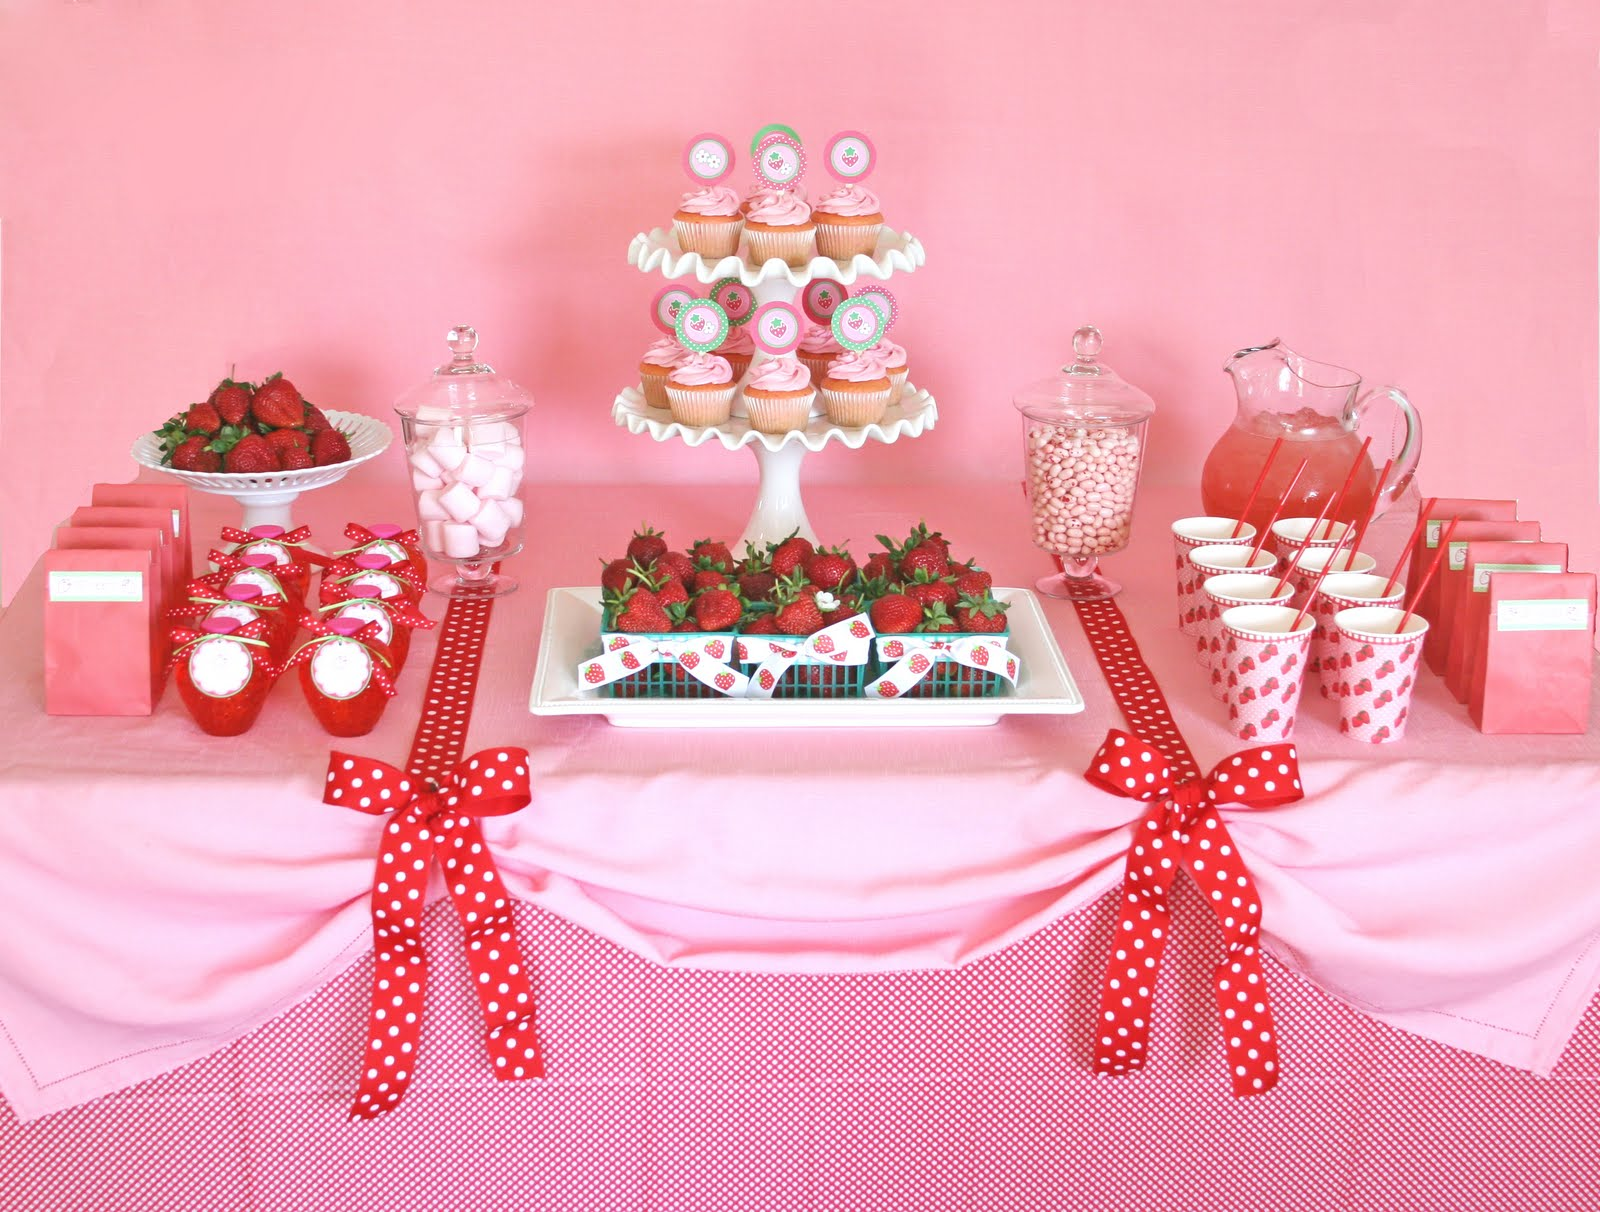 10 Dessert Table Ideas to Make Your Wedding Reception ... |Sweet Treats Party Table